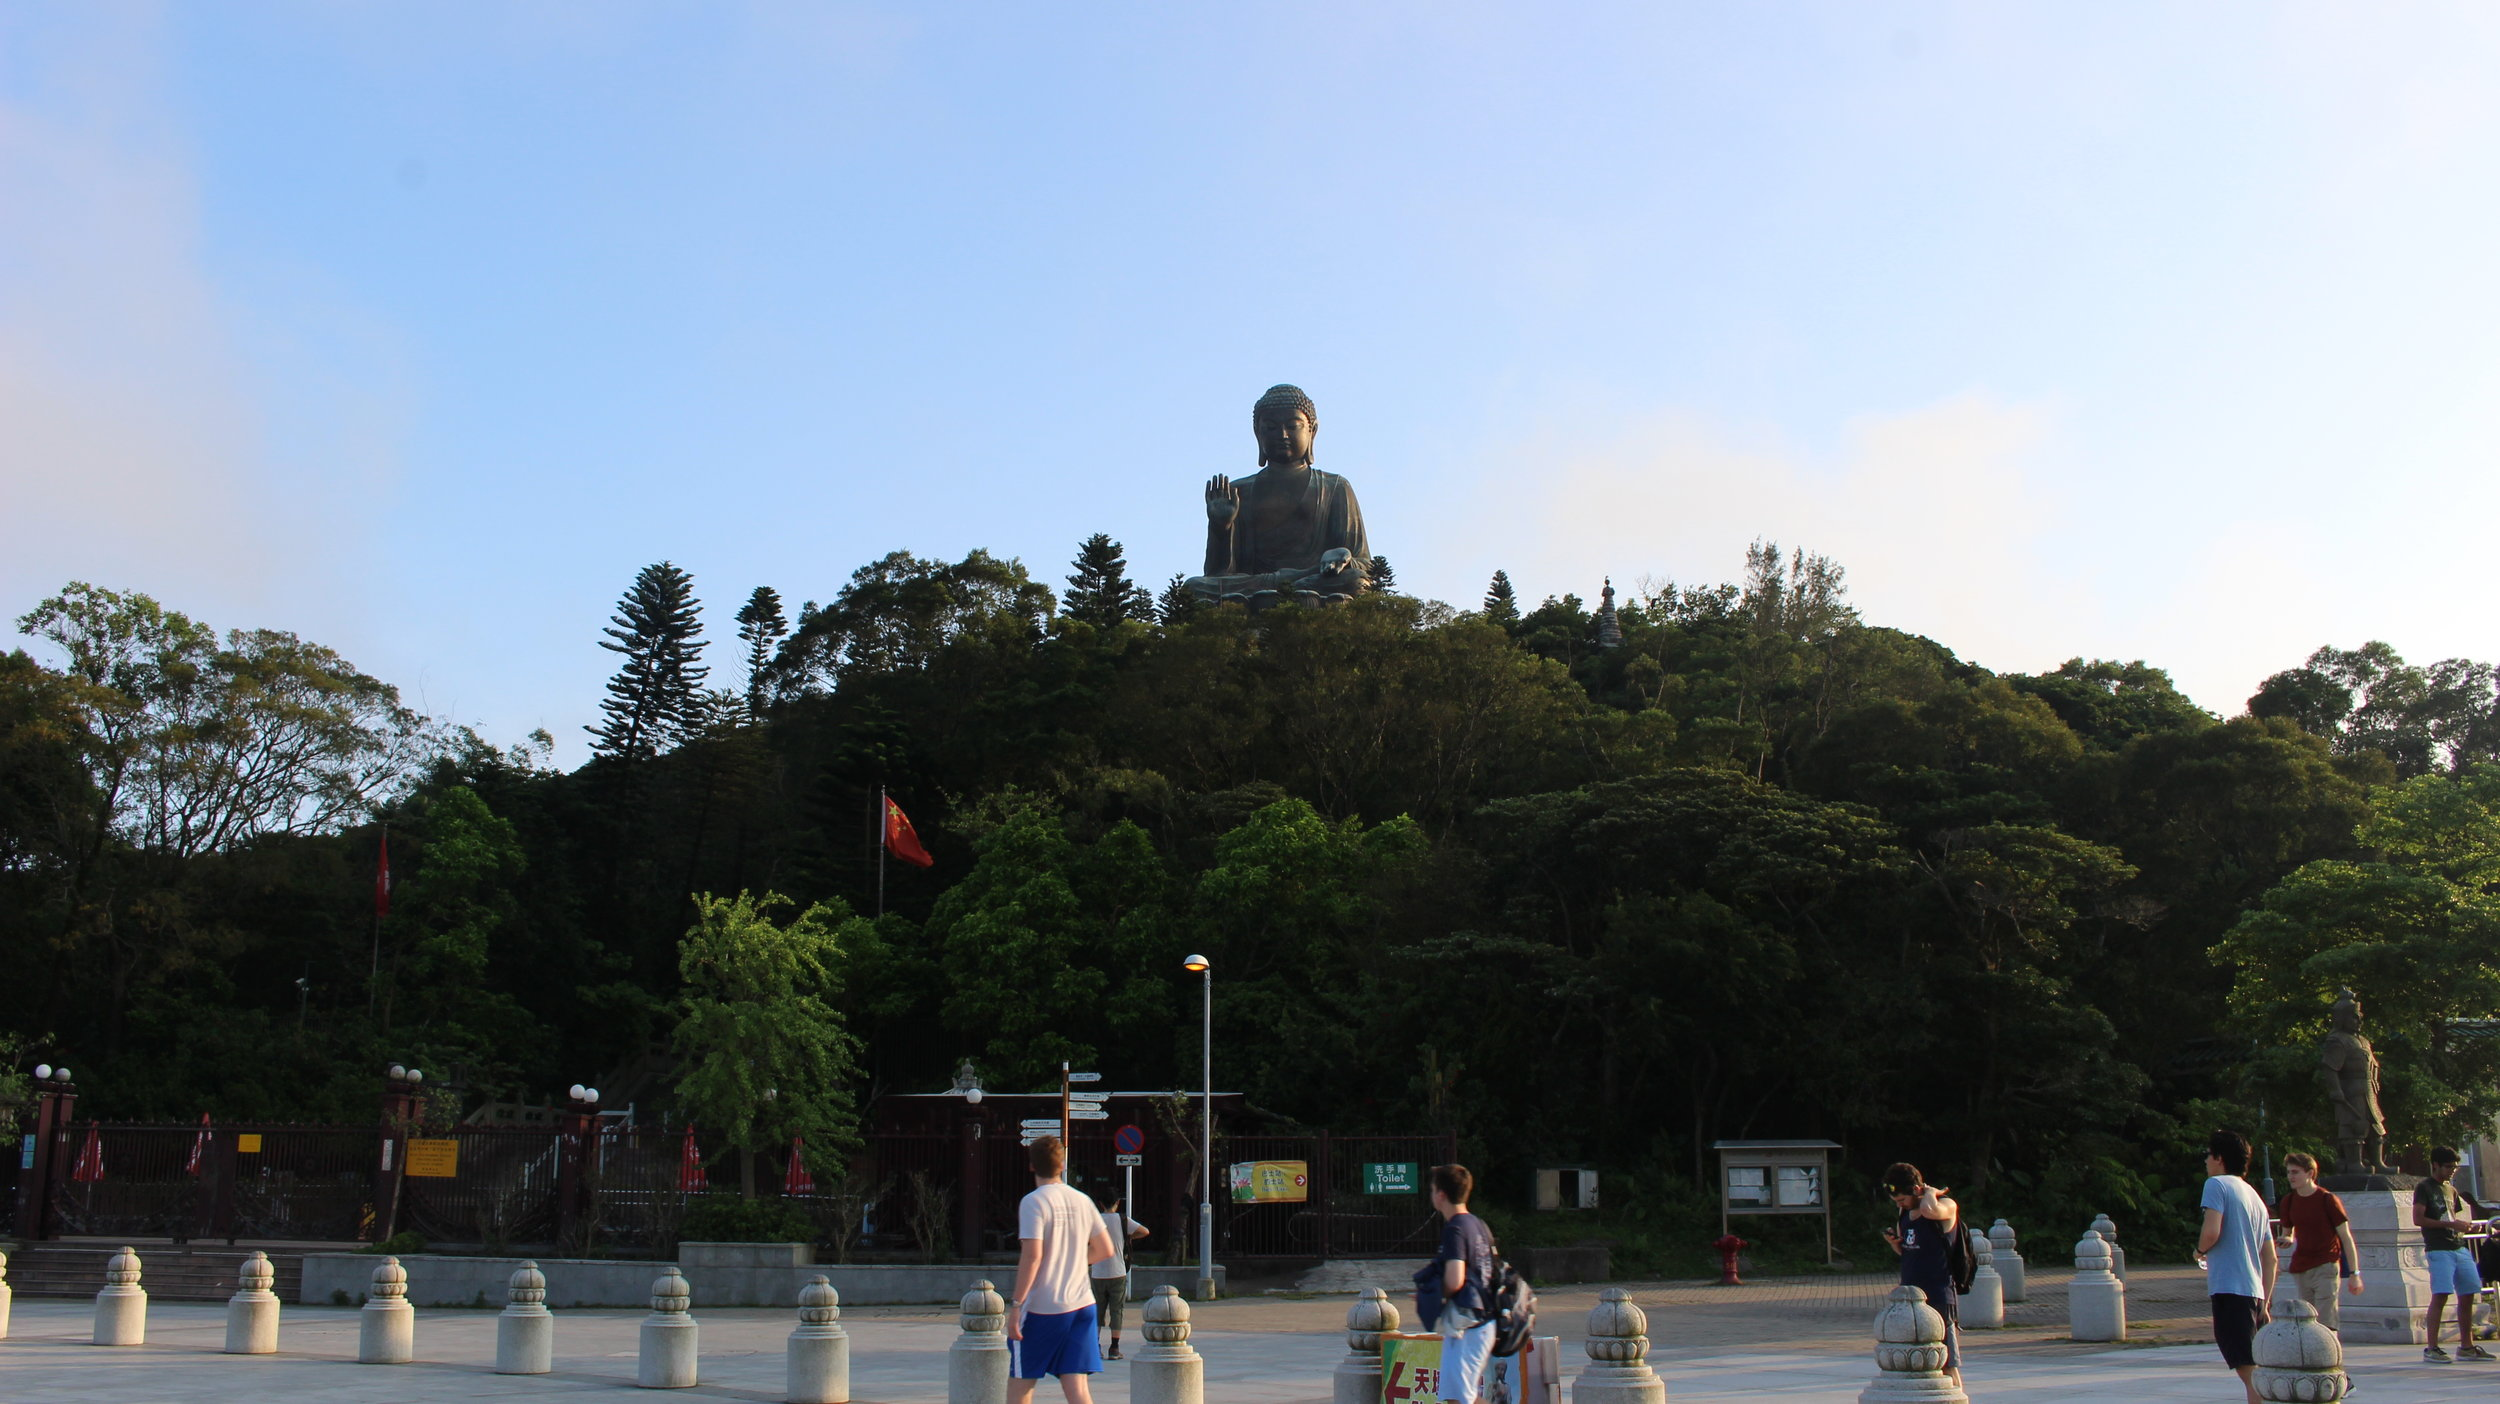 Visiting the largest Buddha statue in the world